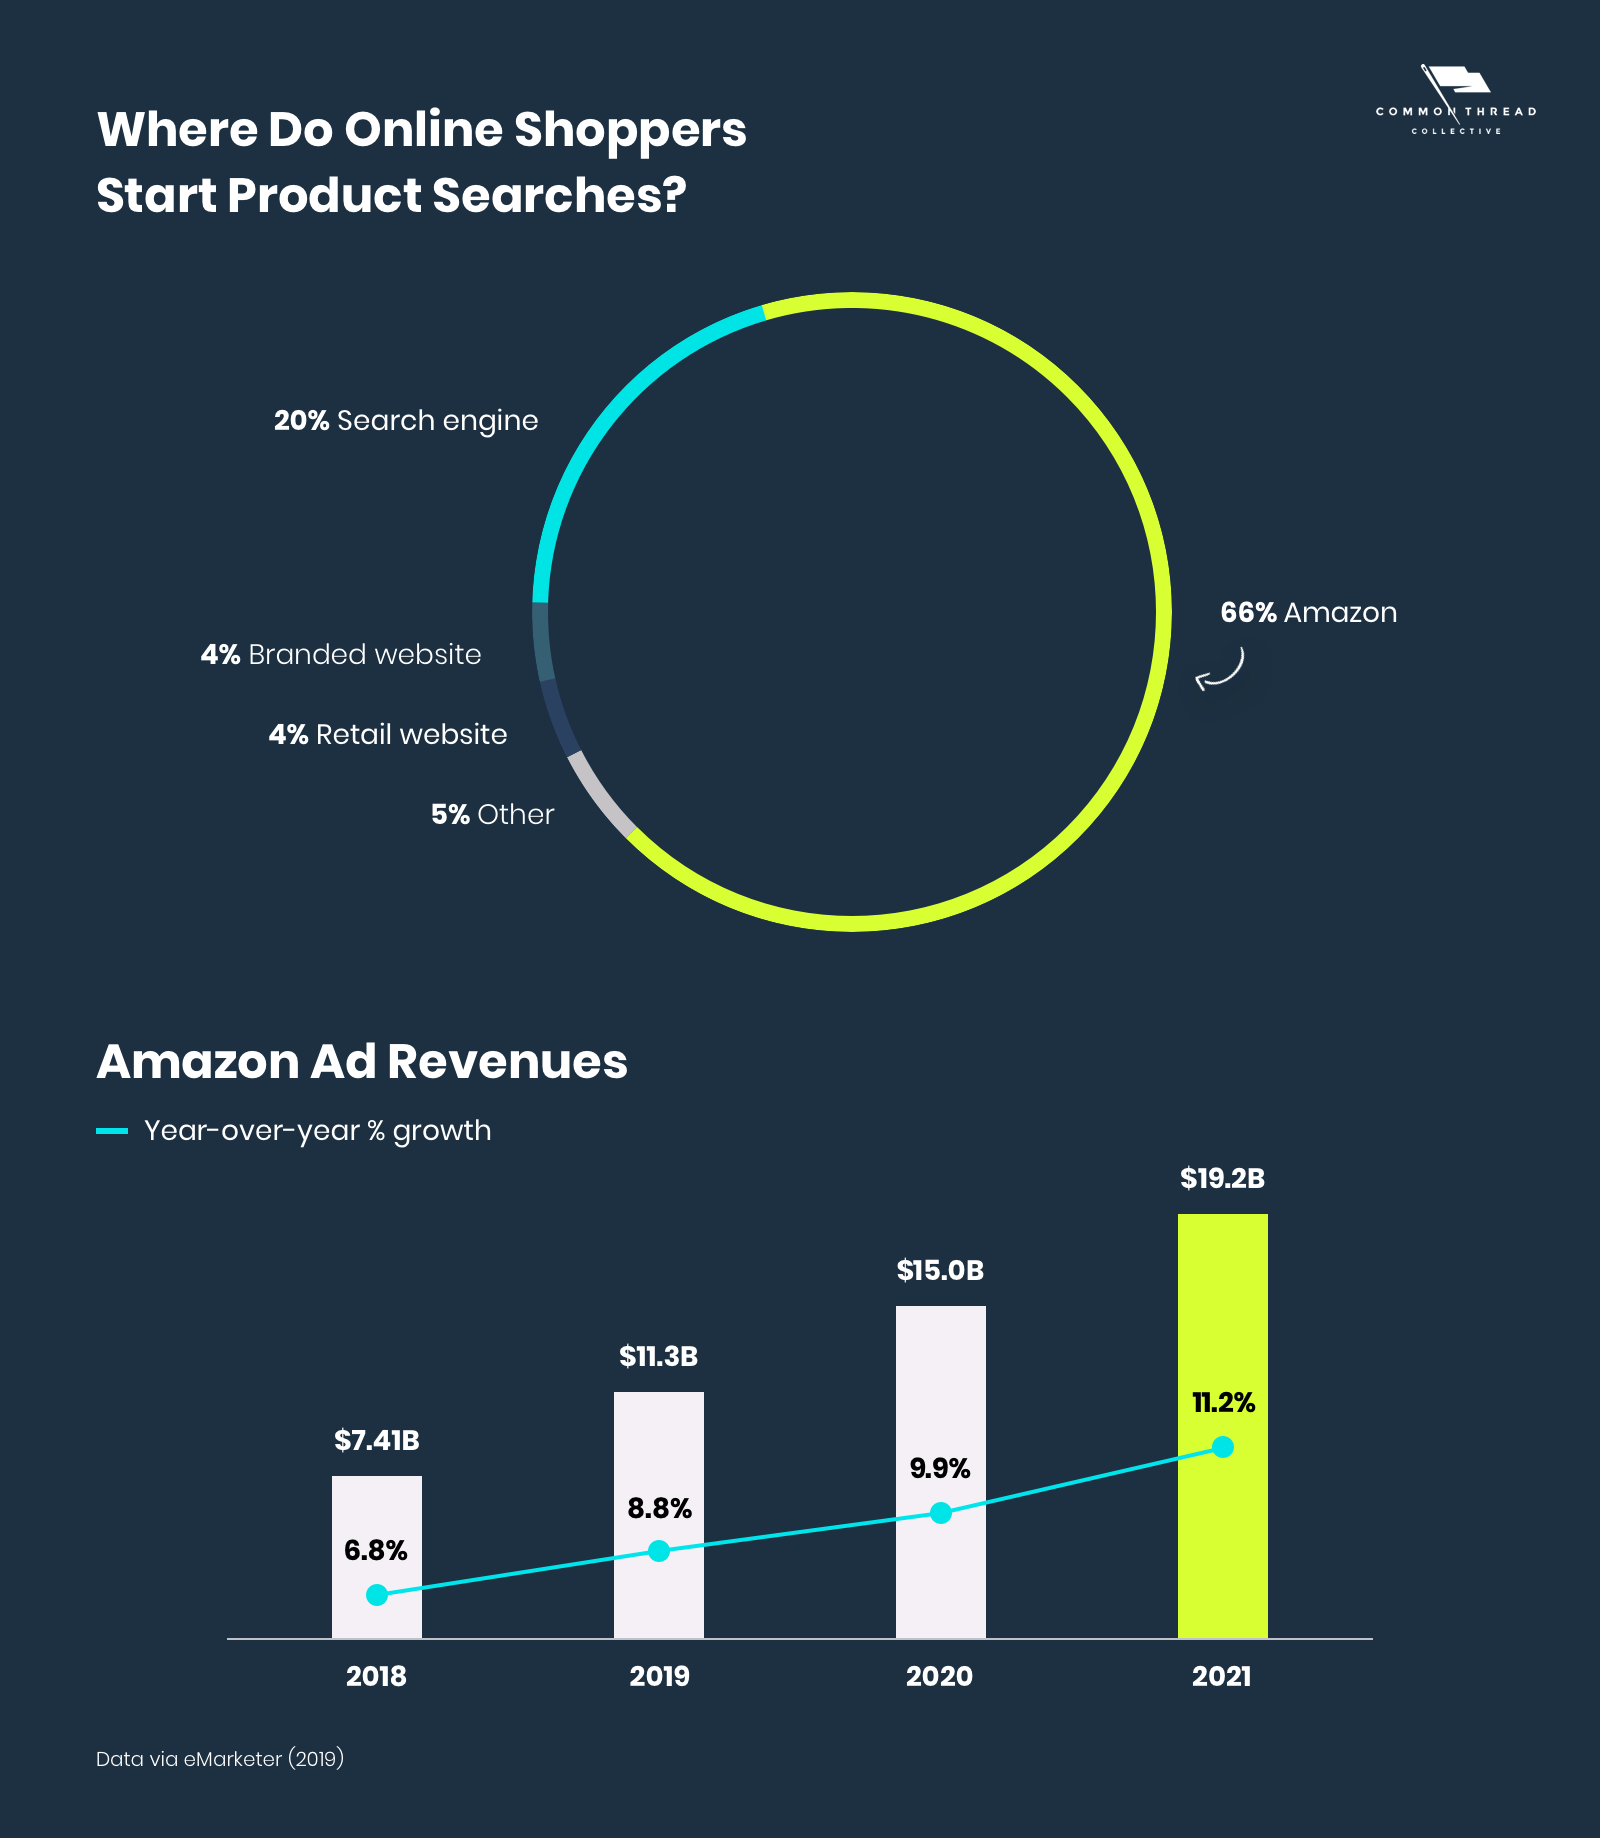 Amazon Ad Revenues and Online Product Discovery vs Google and Search Engines